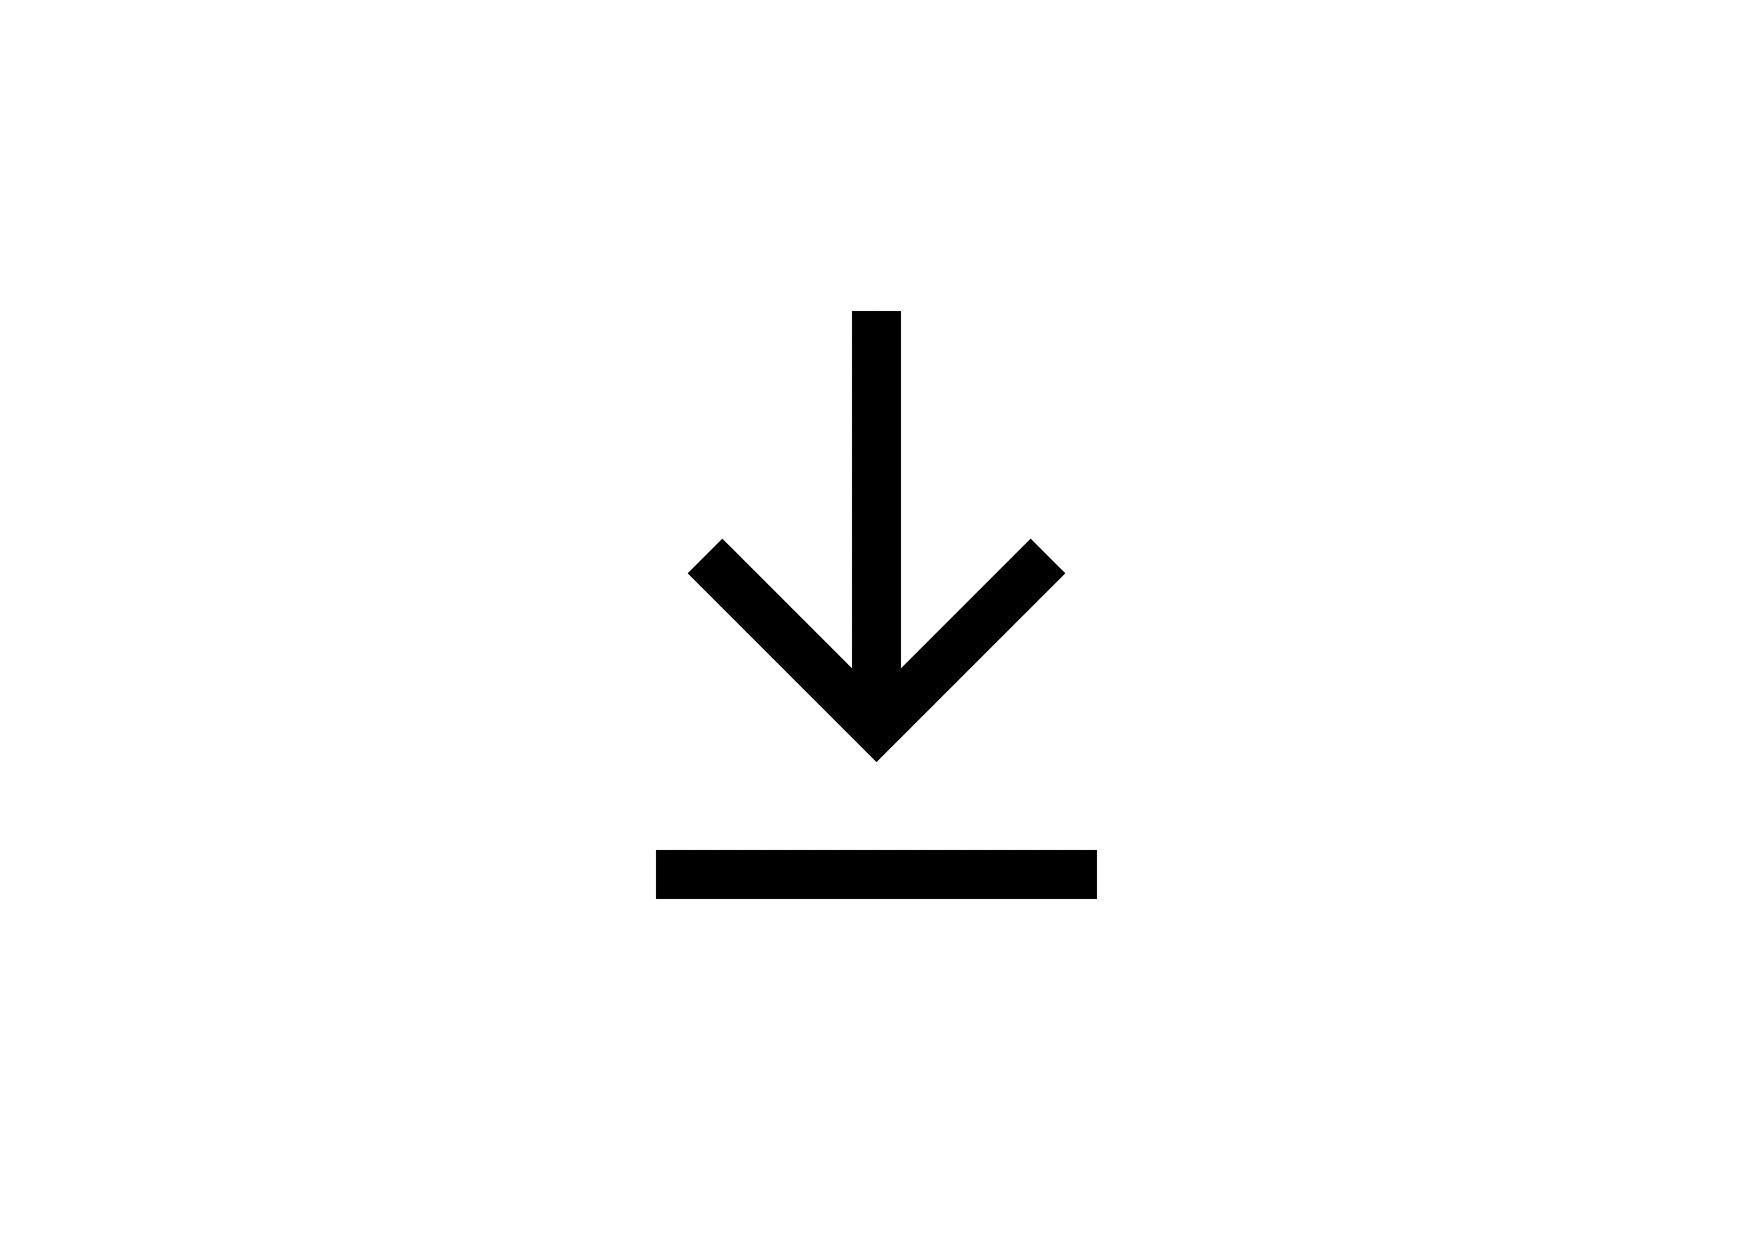 A download symbol